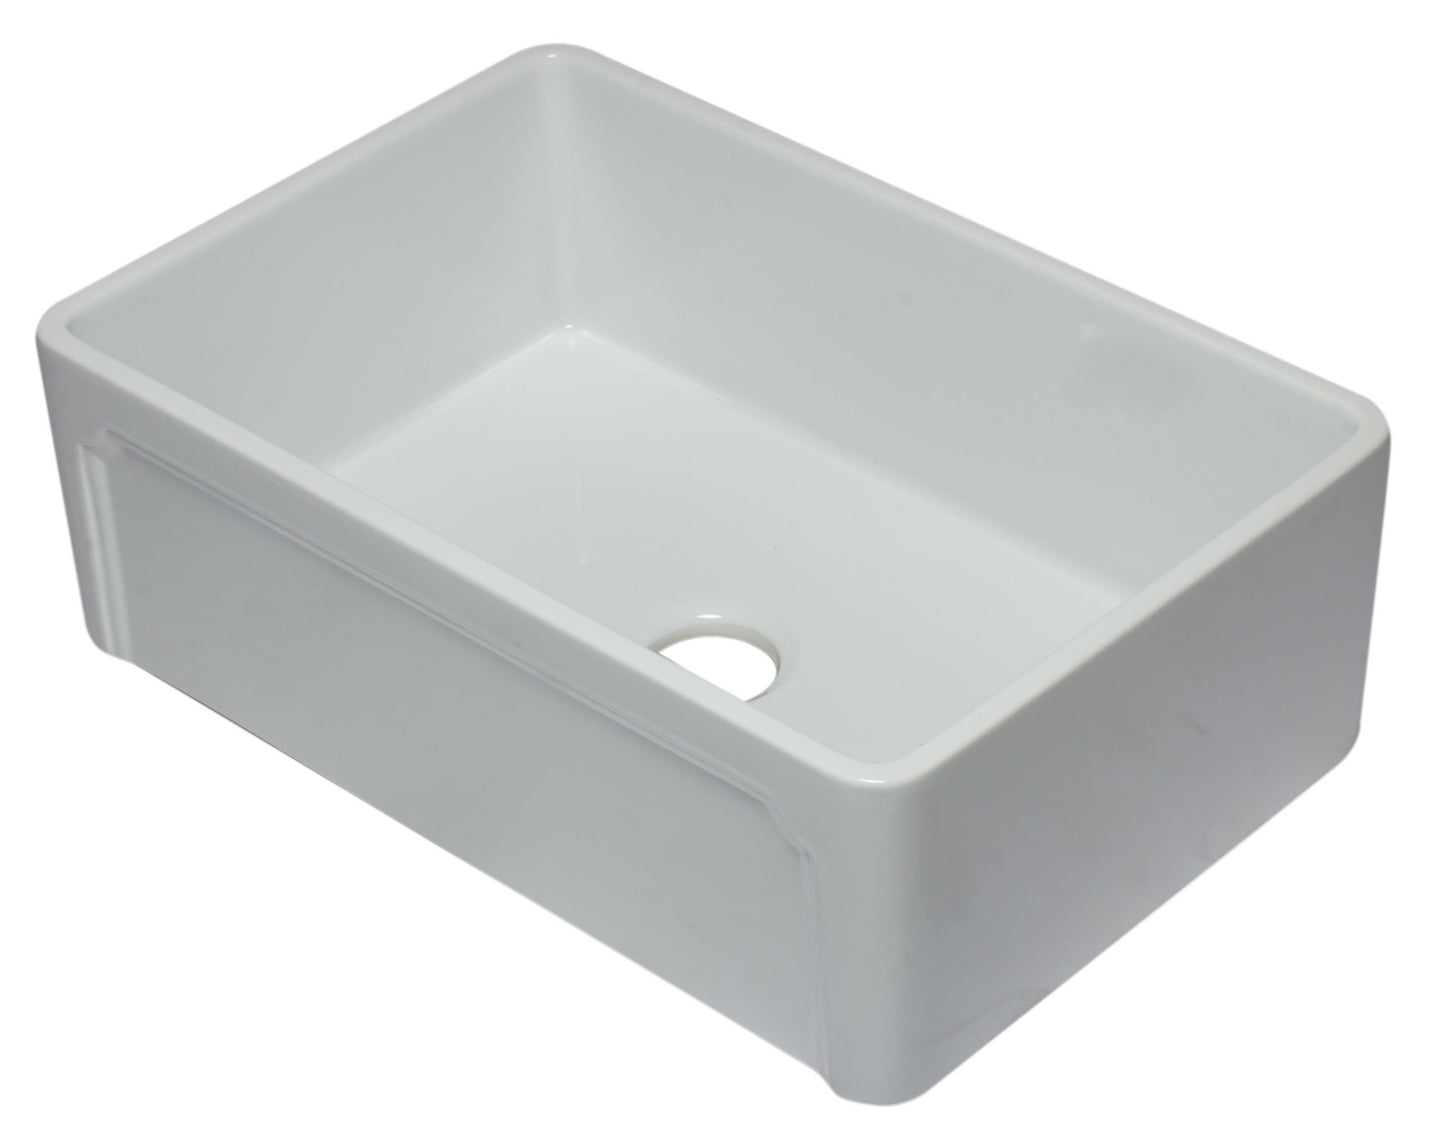 ALFI brand AB3020SB 30 inch Reversible Single Fireclay Farmhouse Kitchen Sink